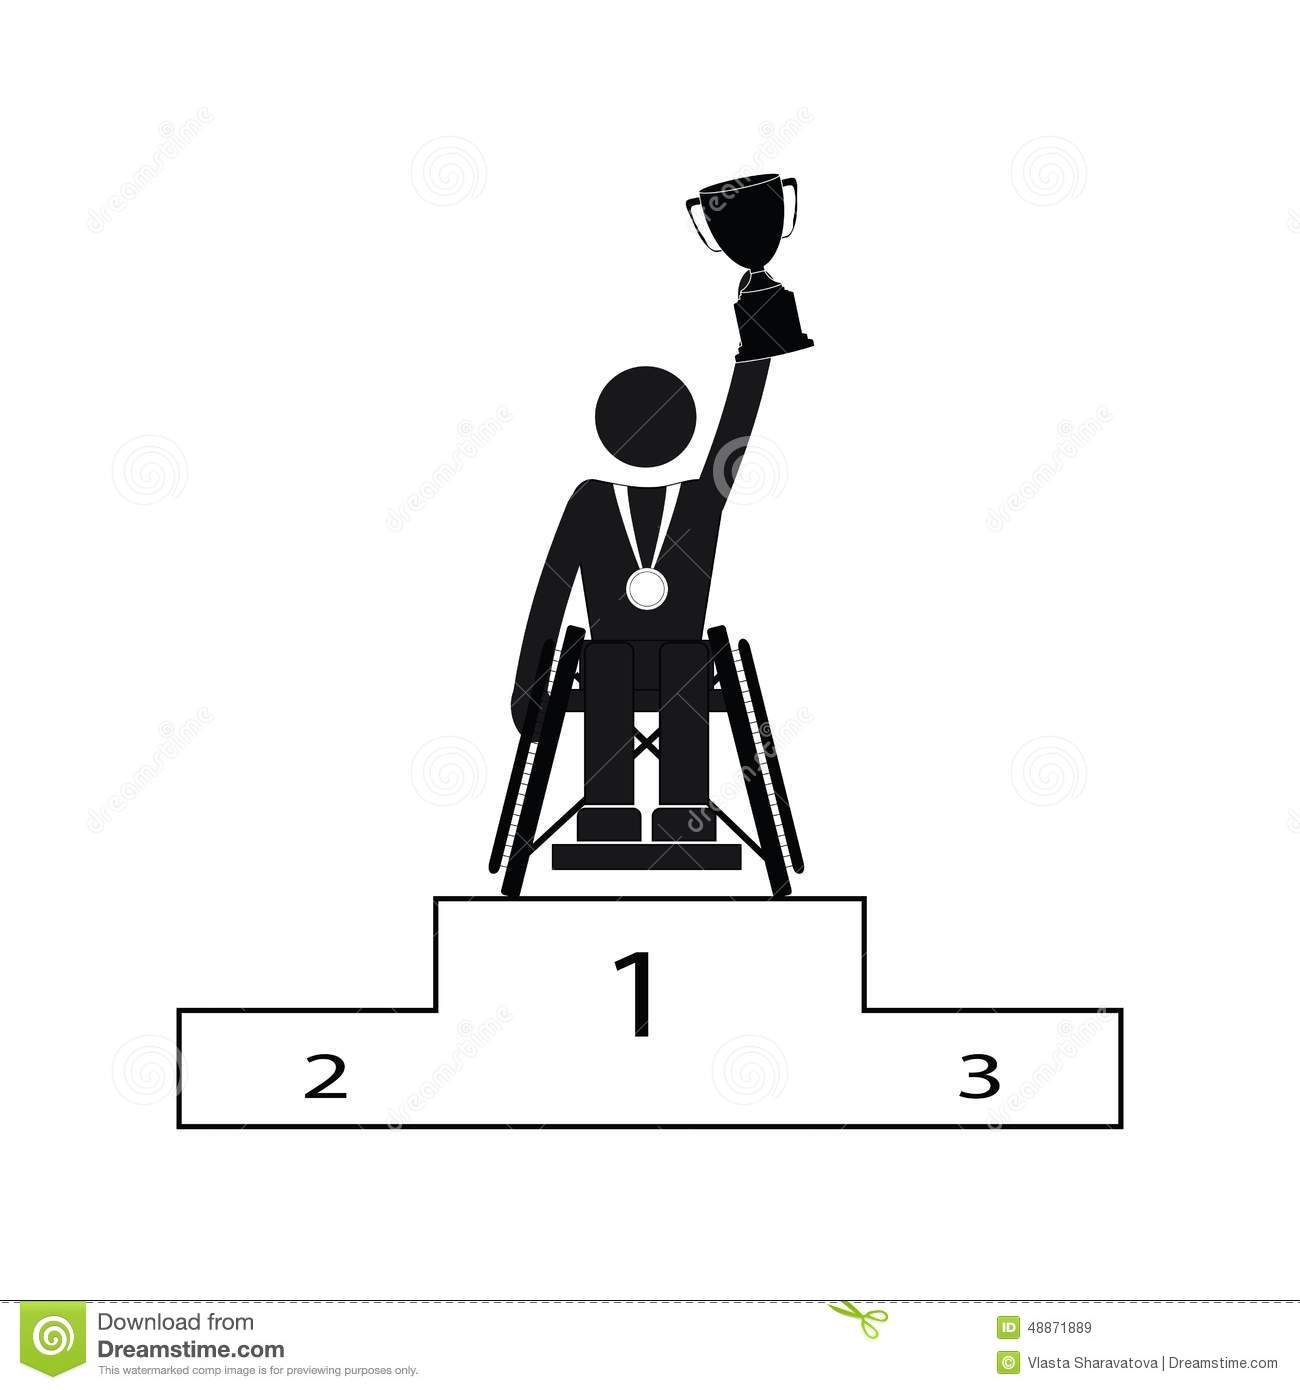 Disable Handicap Sport Paralympic Games Stick Figure Pictogram.